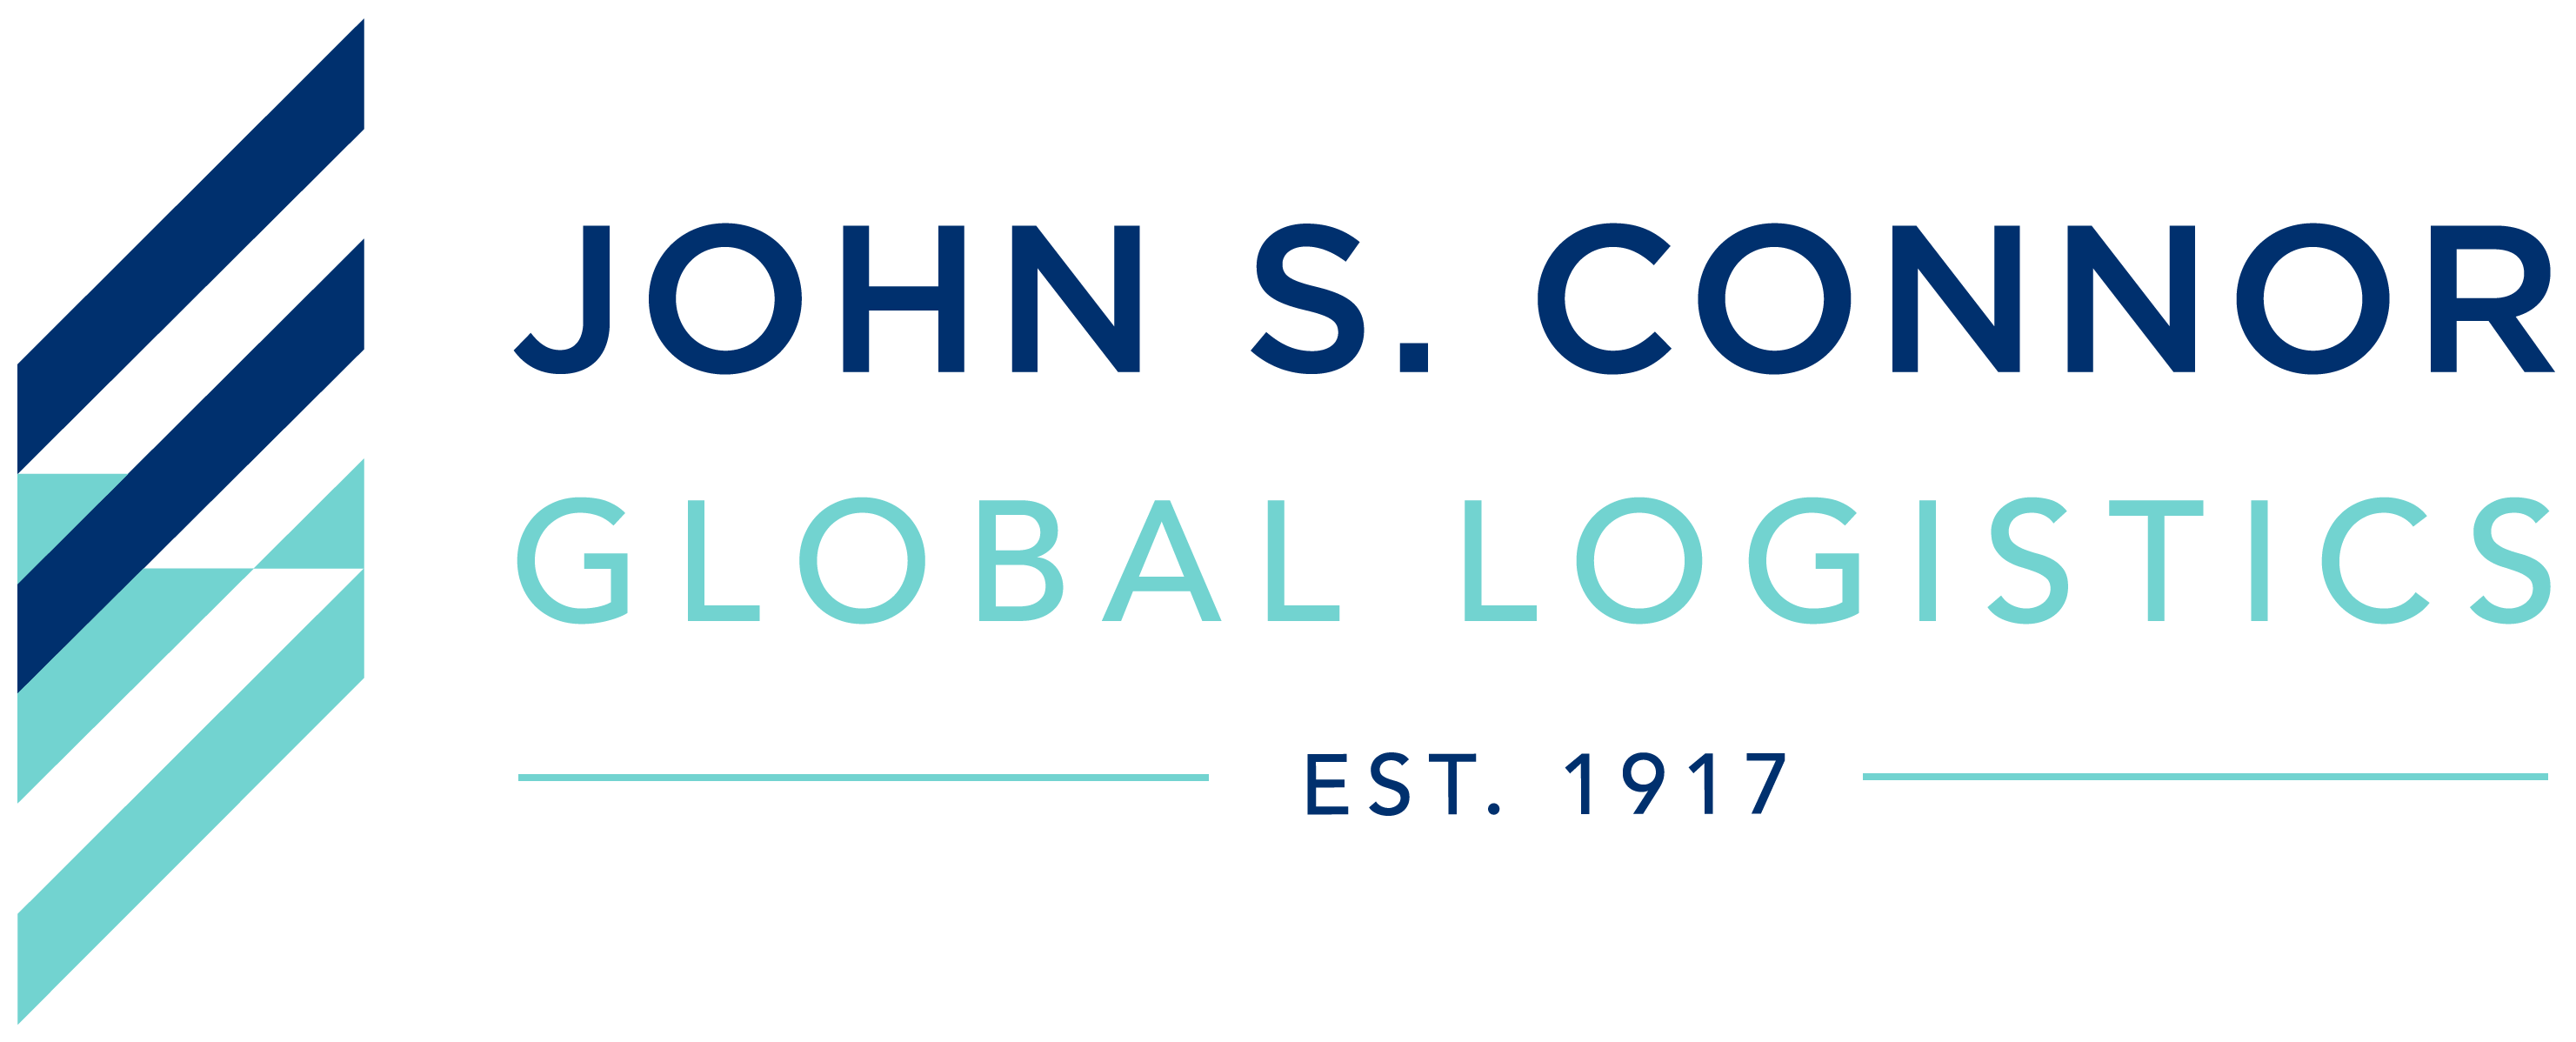 The John S. Connor logo